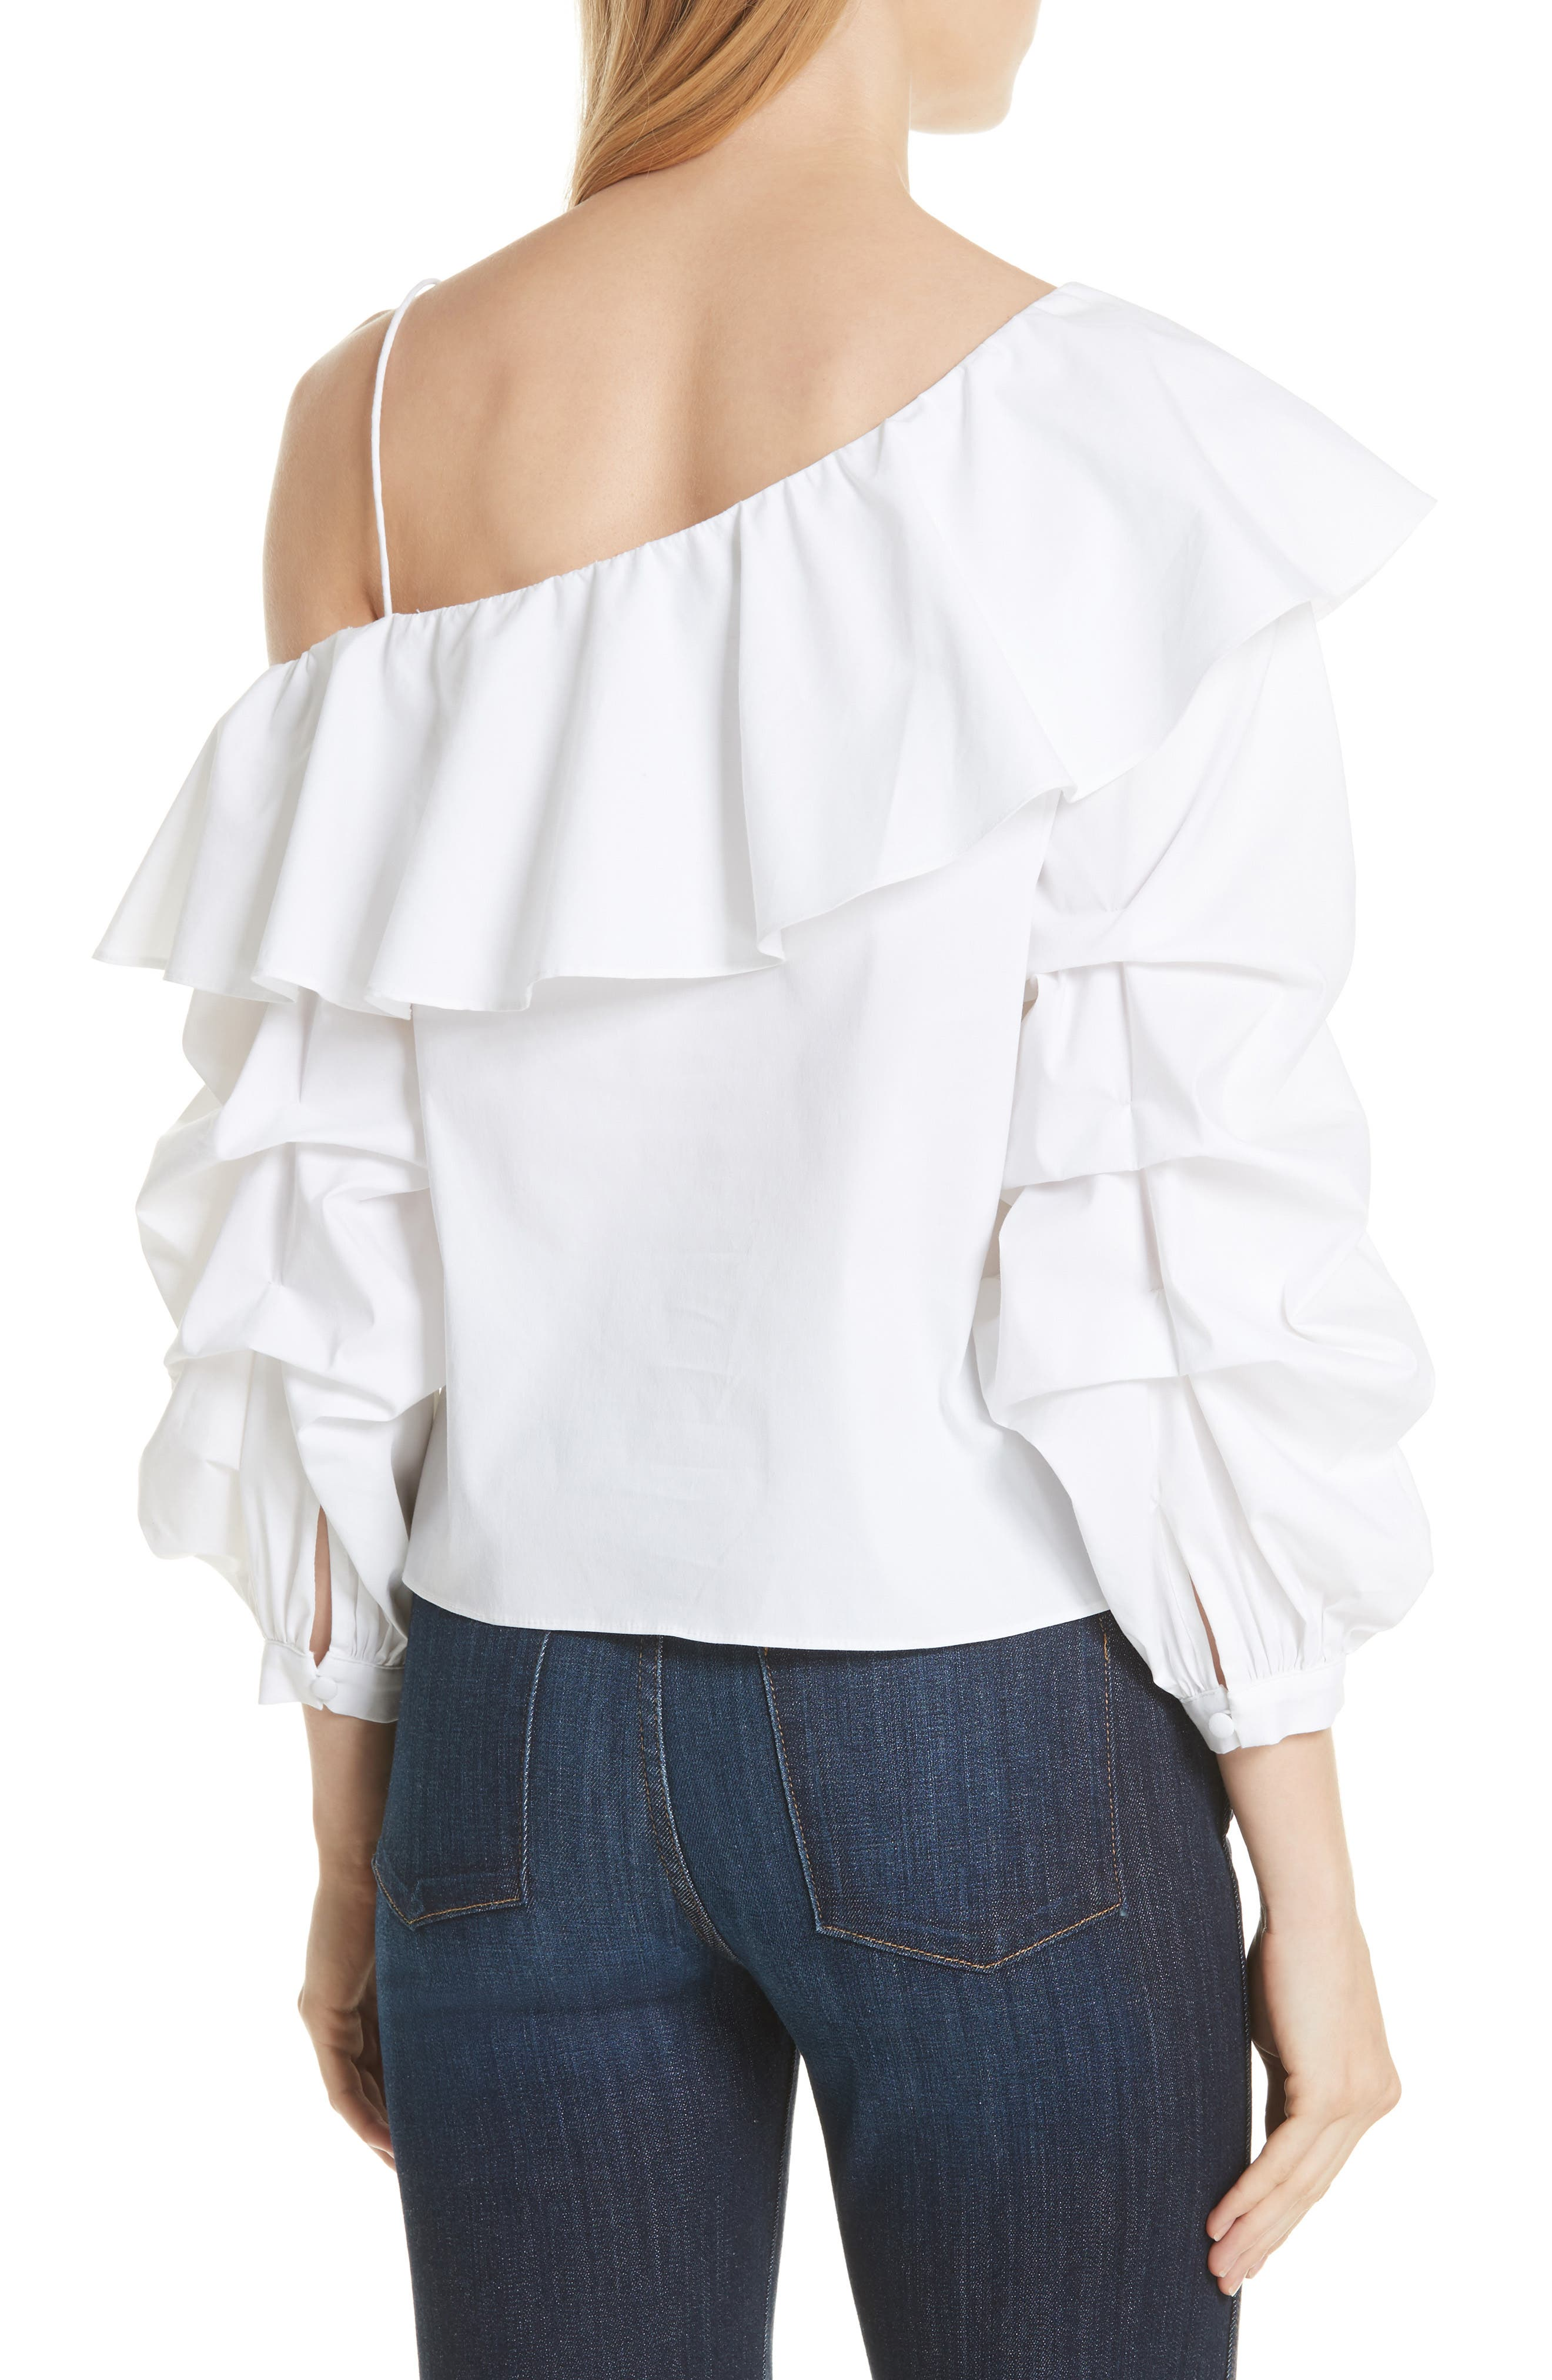 Irvine Ruffle One-Shoulder Blouse,                             Alternate thumbnail 2, color,                             White